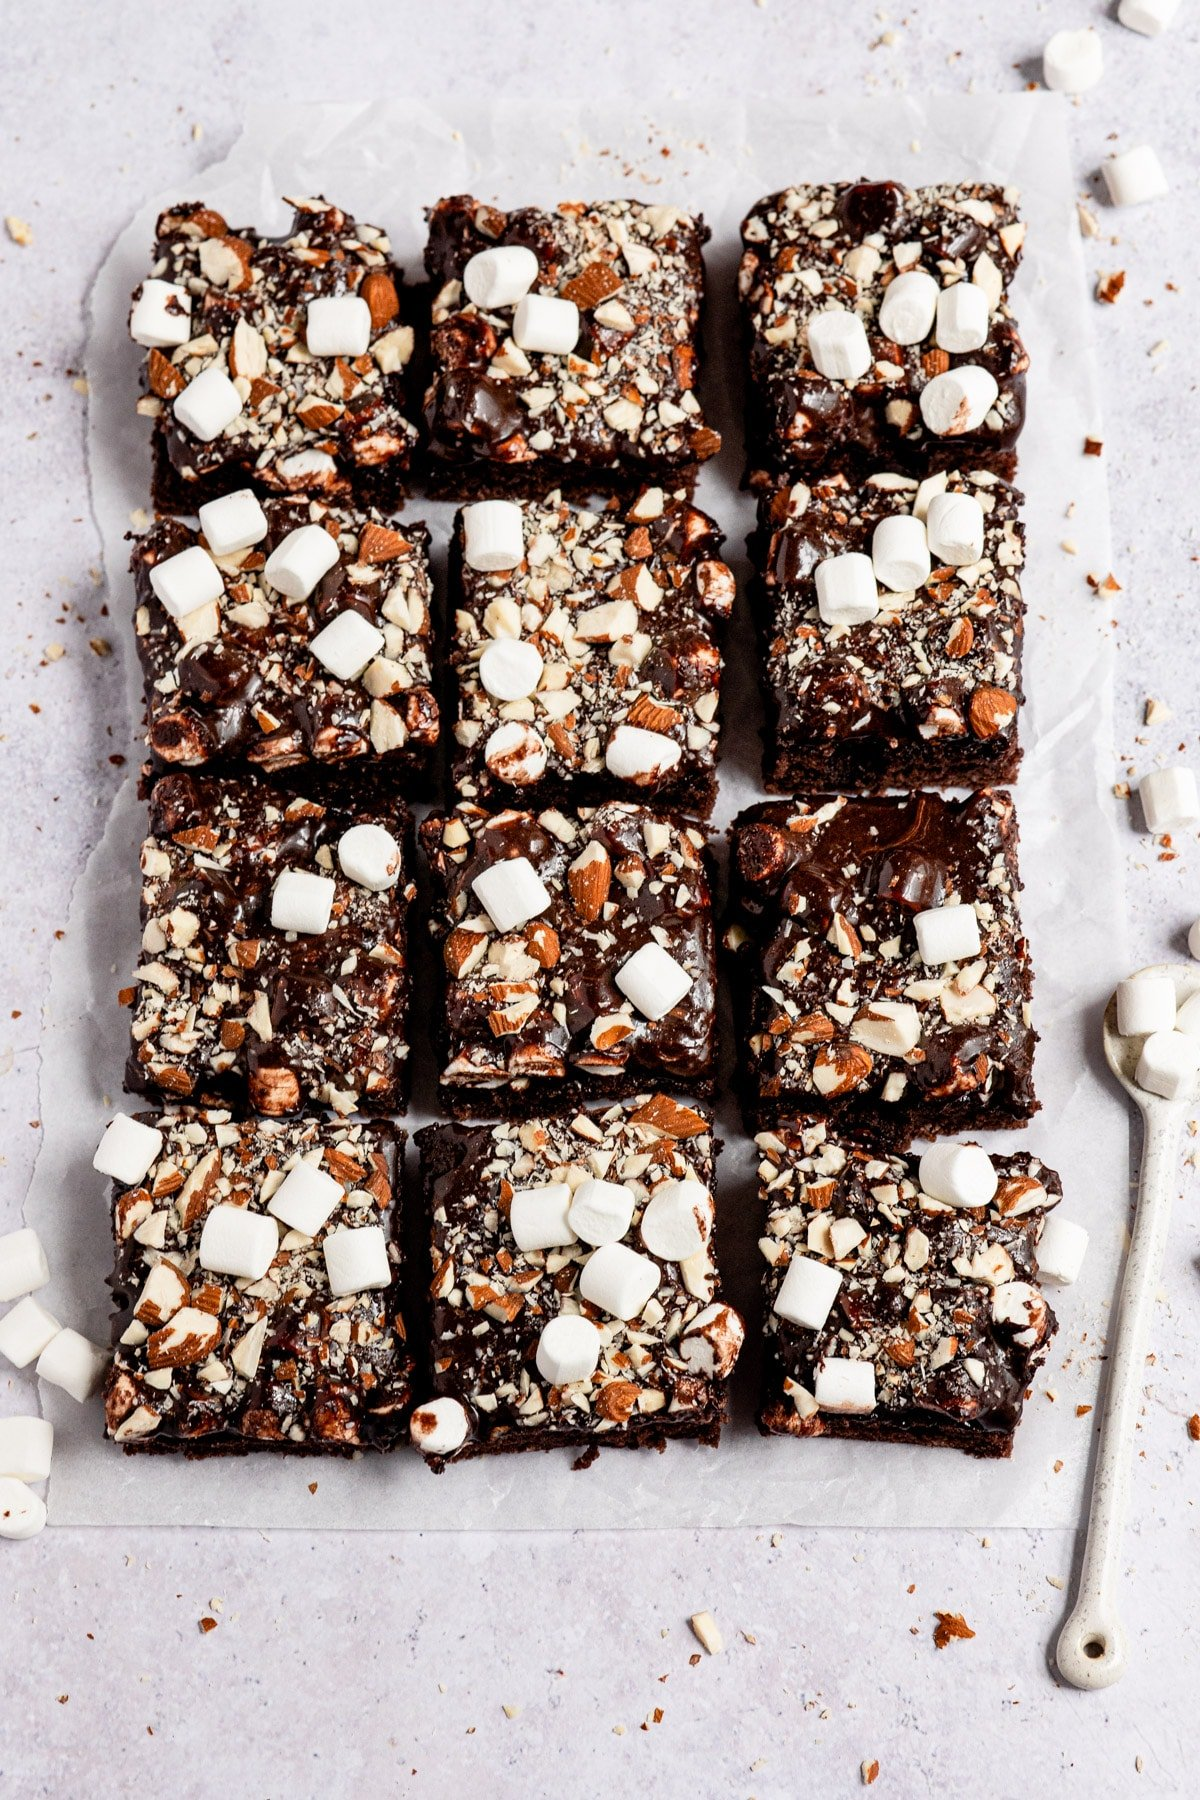 Rocky road sheet cake cut into slices.